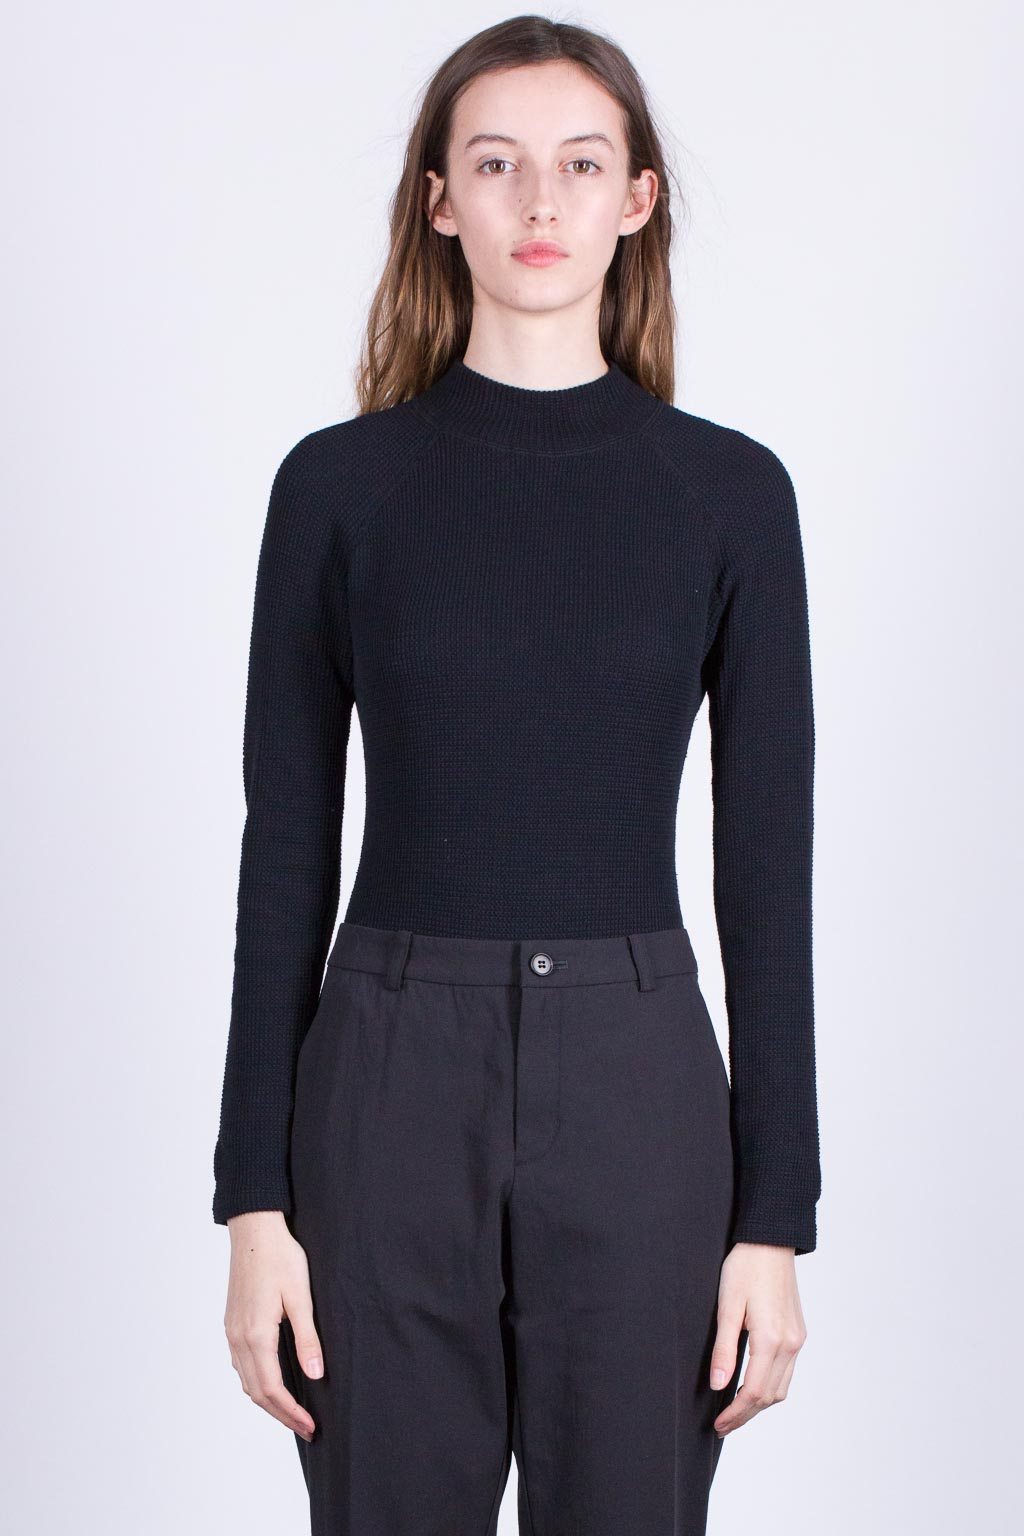 Stretch thermal high neck bodysuit - black